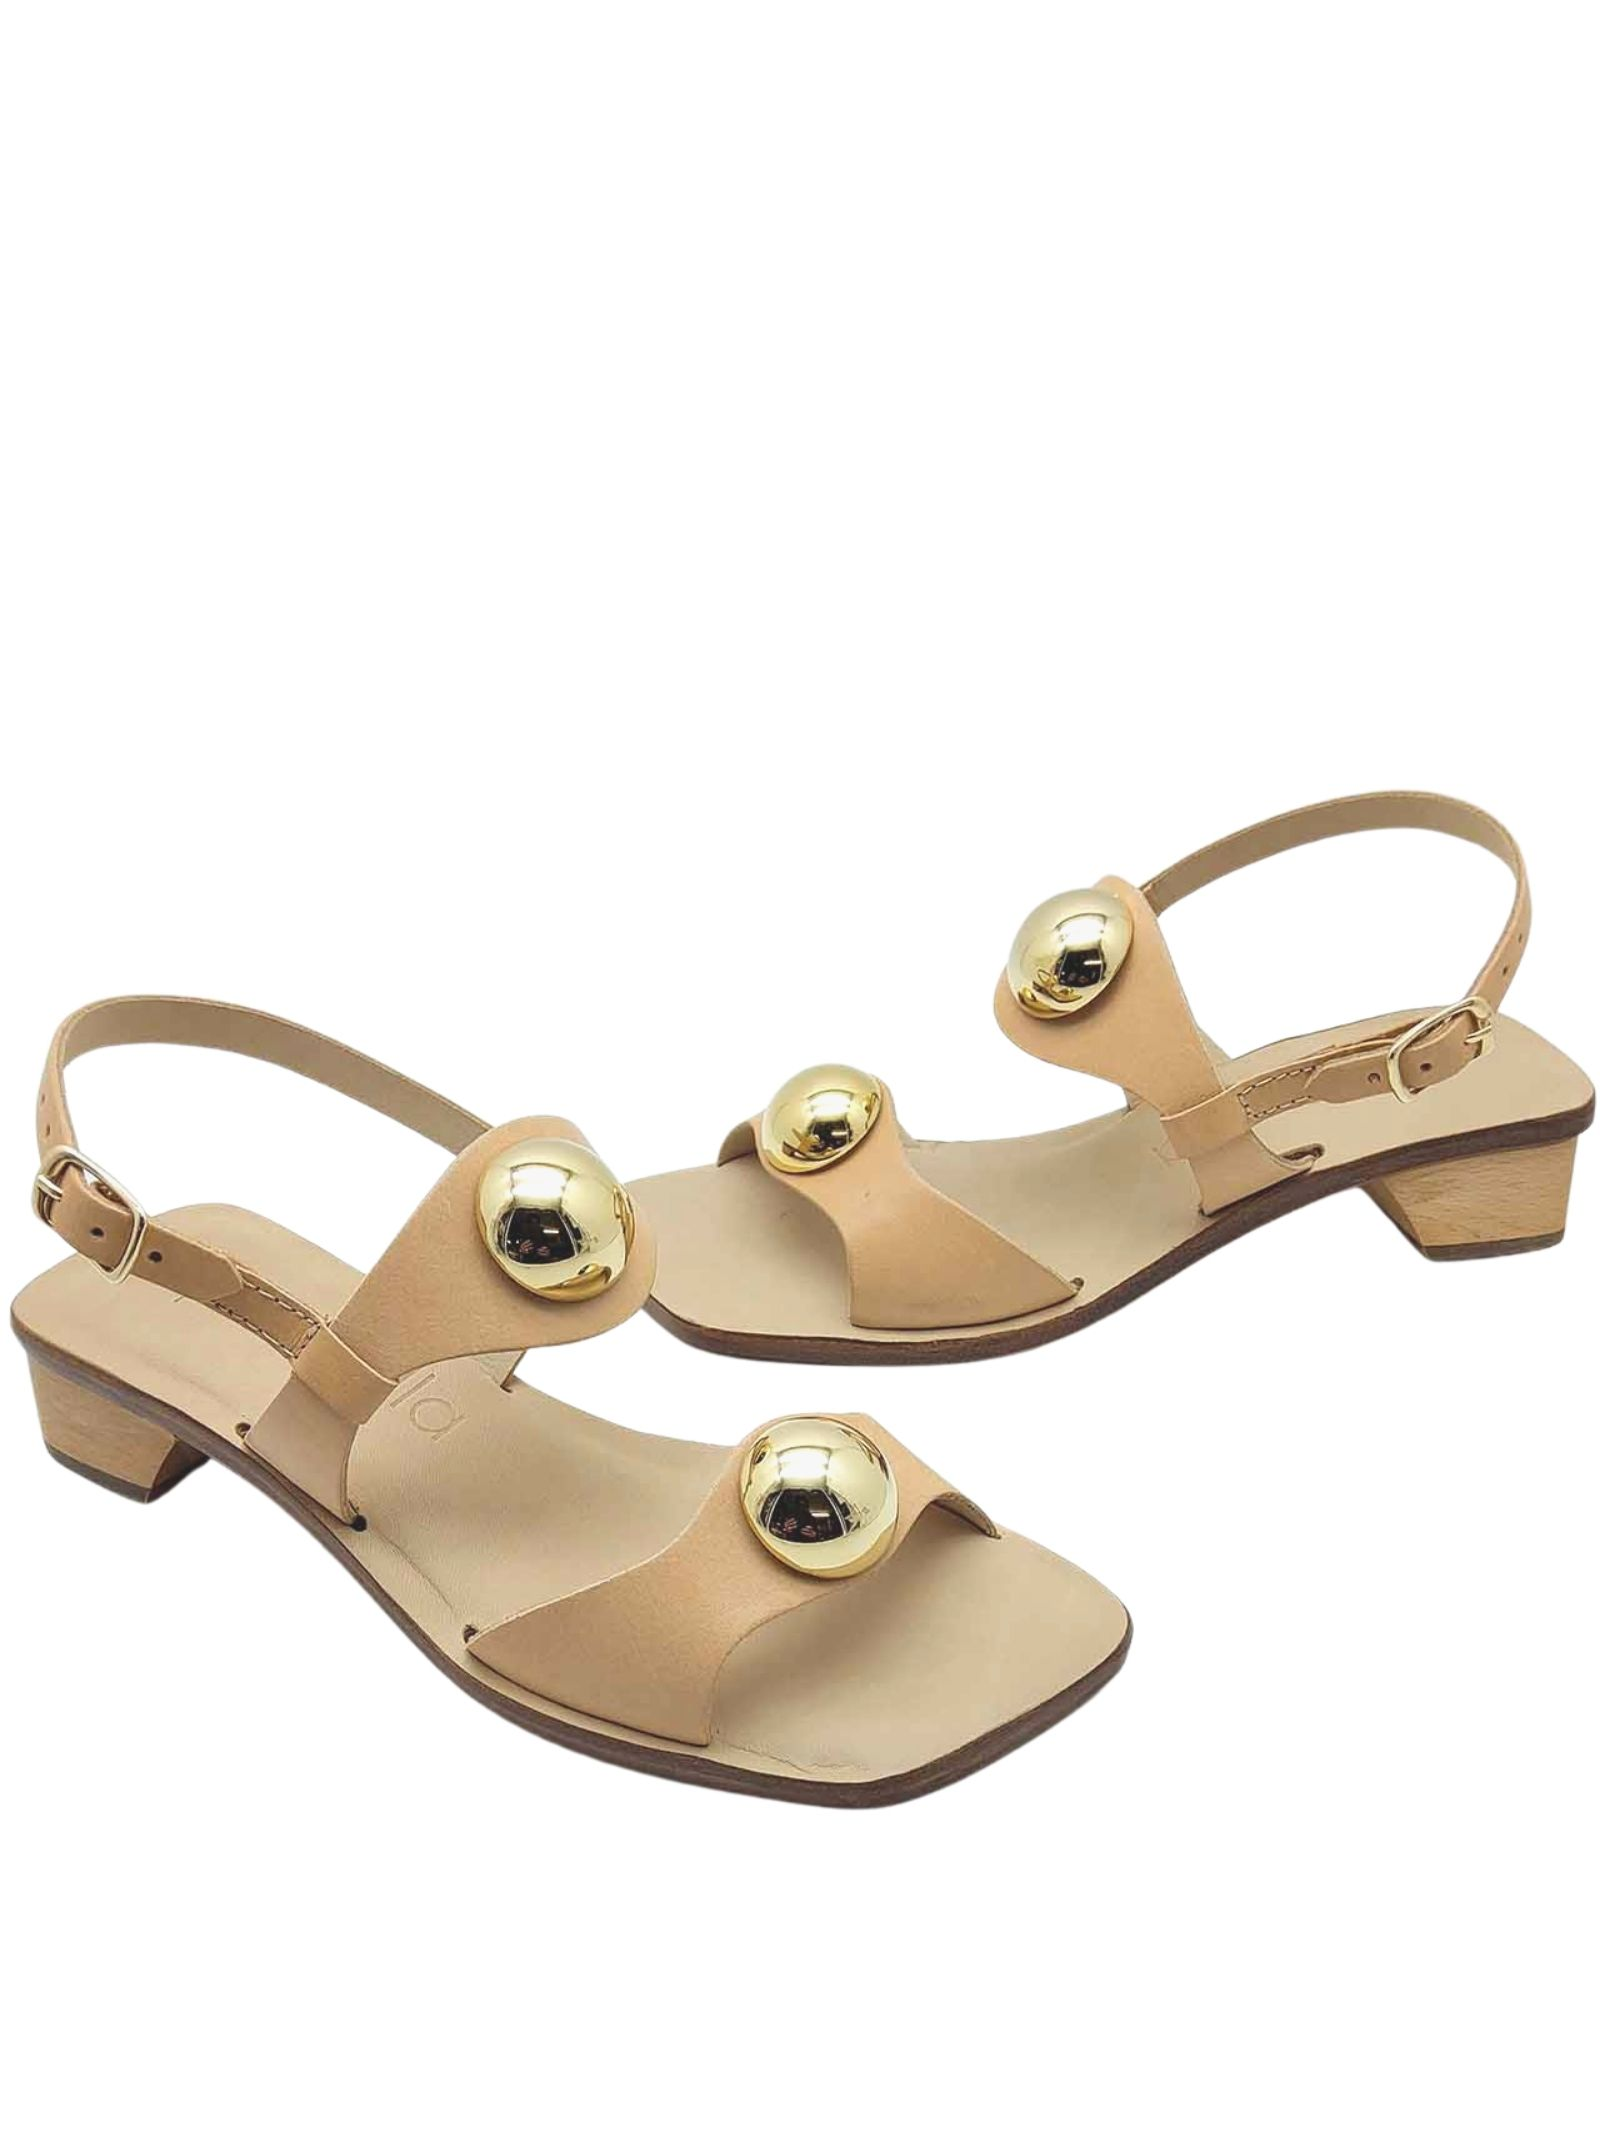 Women's Shoes Heeled Sandals in Nude Leather Double Band With Gold Studs And Back Strap Spatarella   Sandals   DL10300